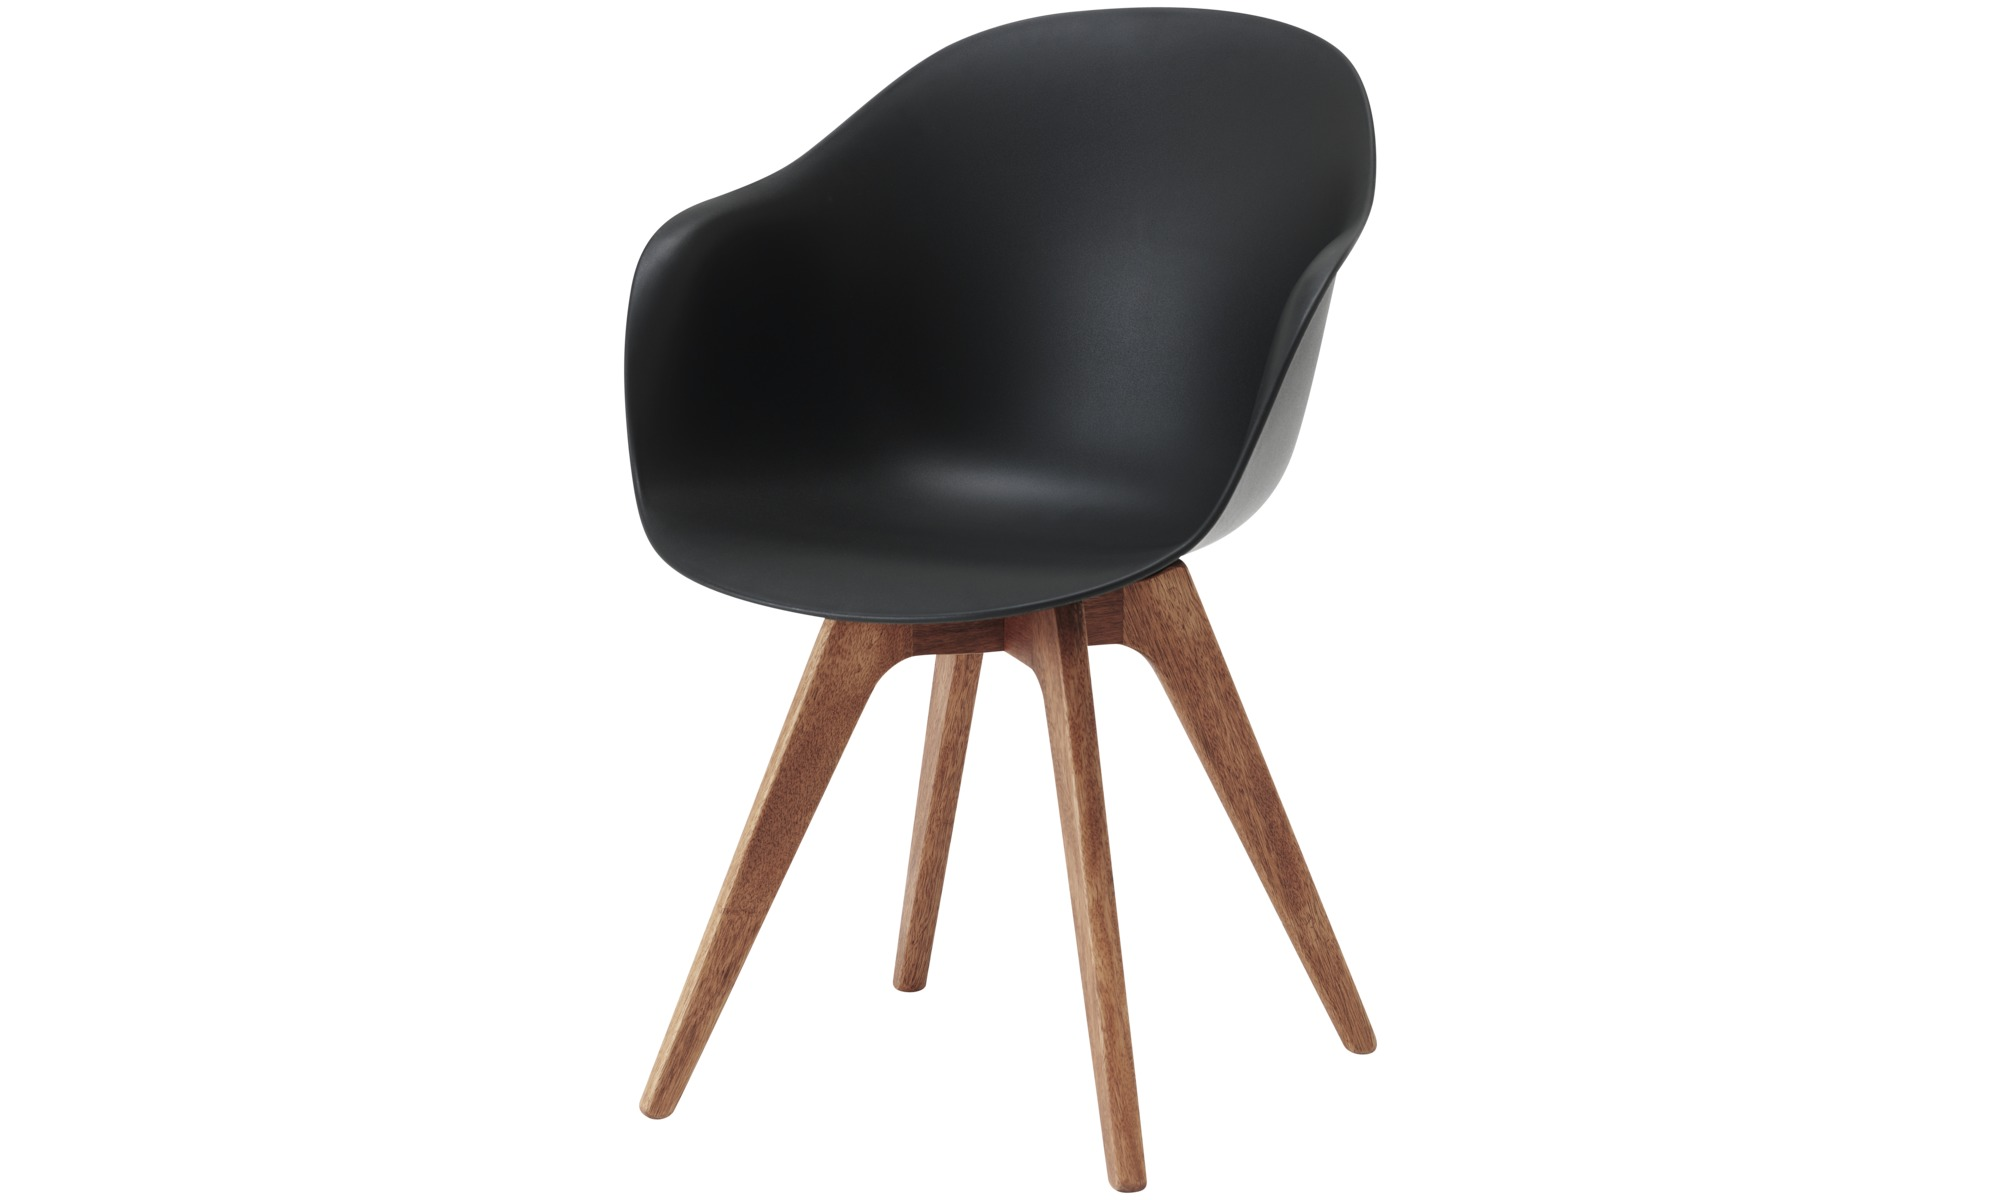 Dining chairs - Adelaide chair (for in and outdoor use) - Black - Plastic